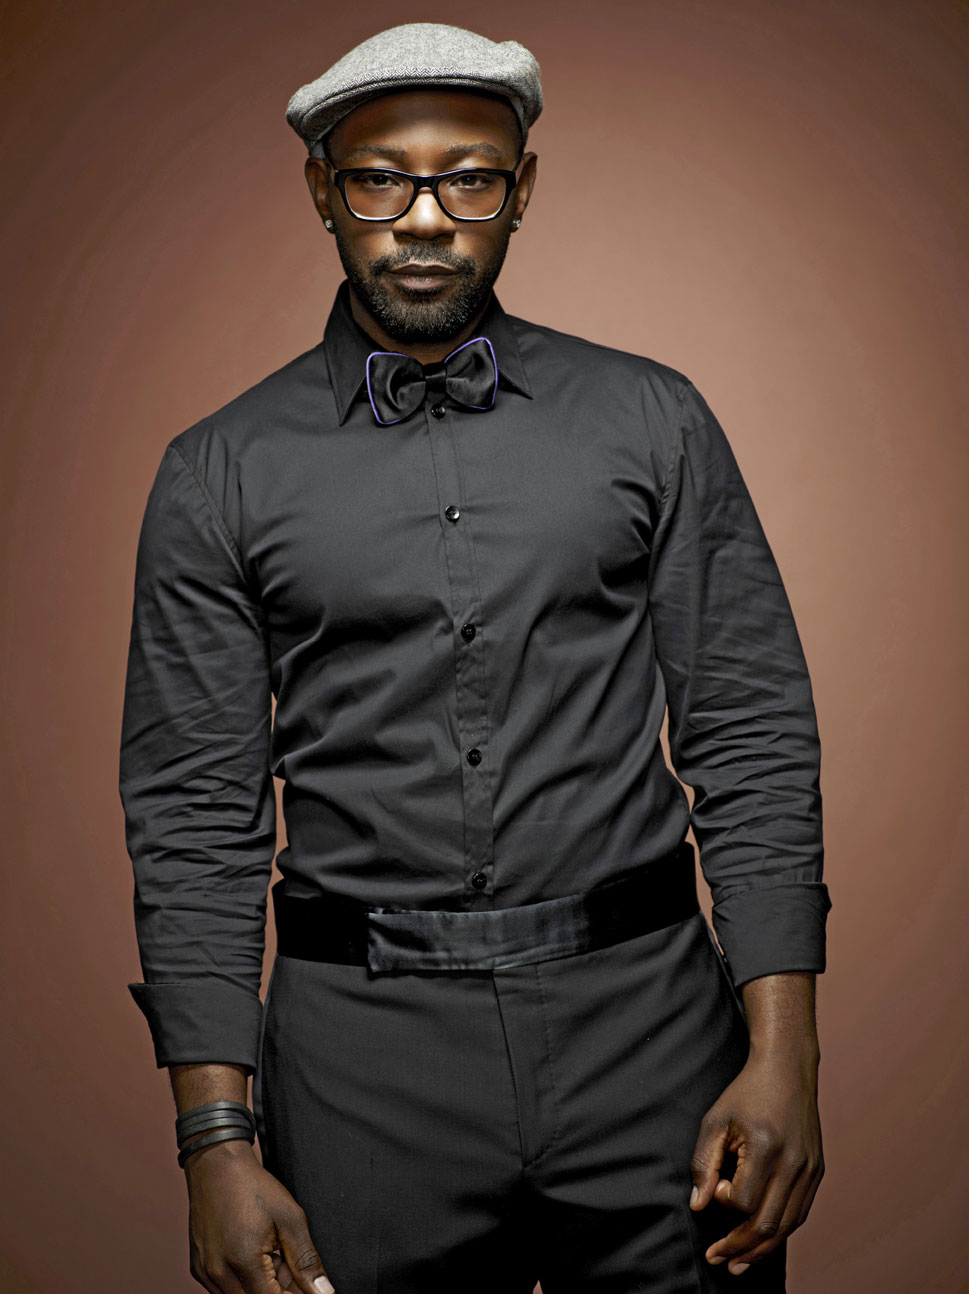 Nelsan Ellis True Blood Season 4 official HBO portrait photo